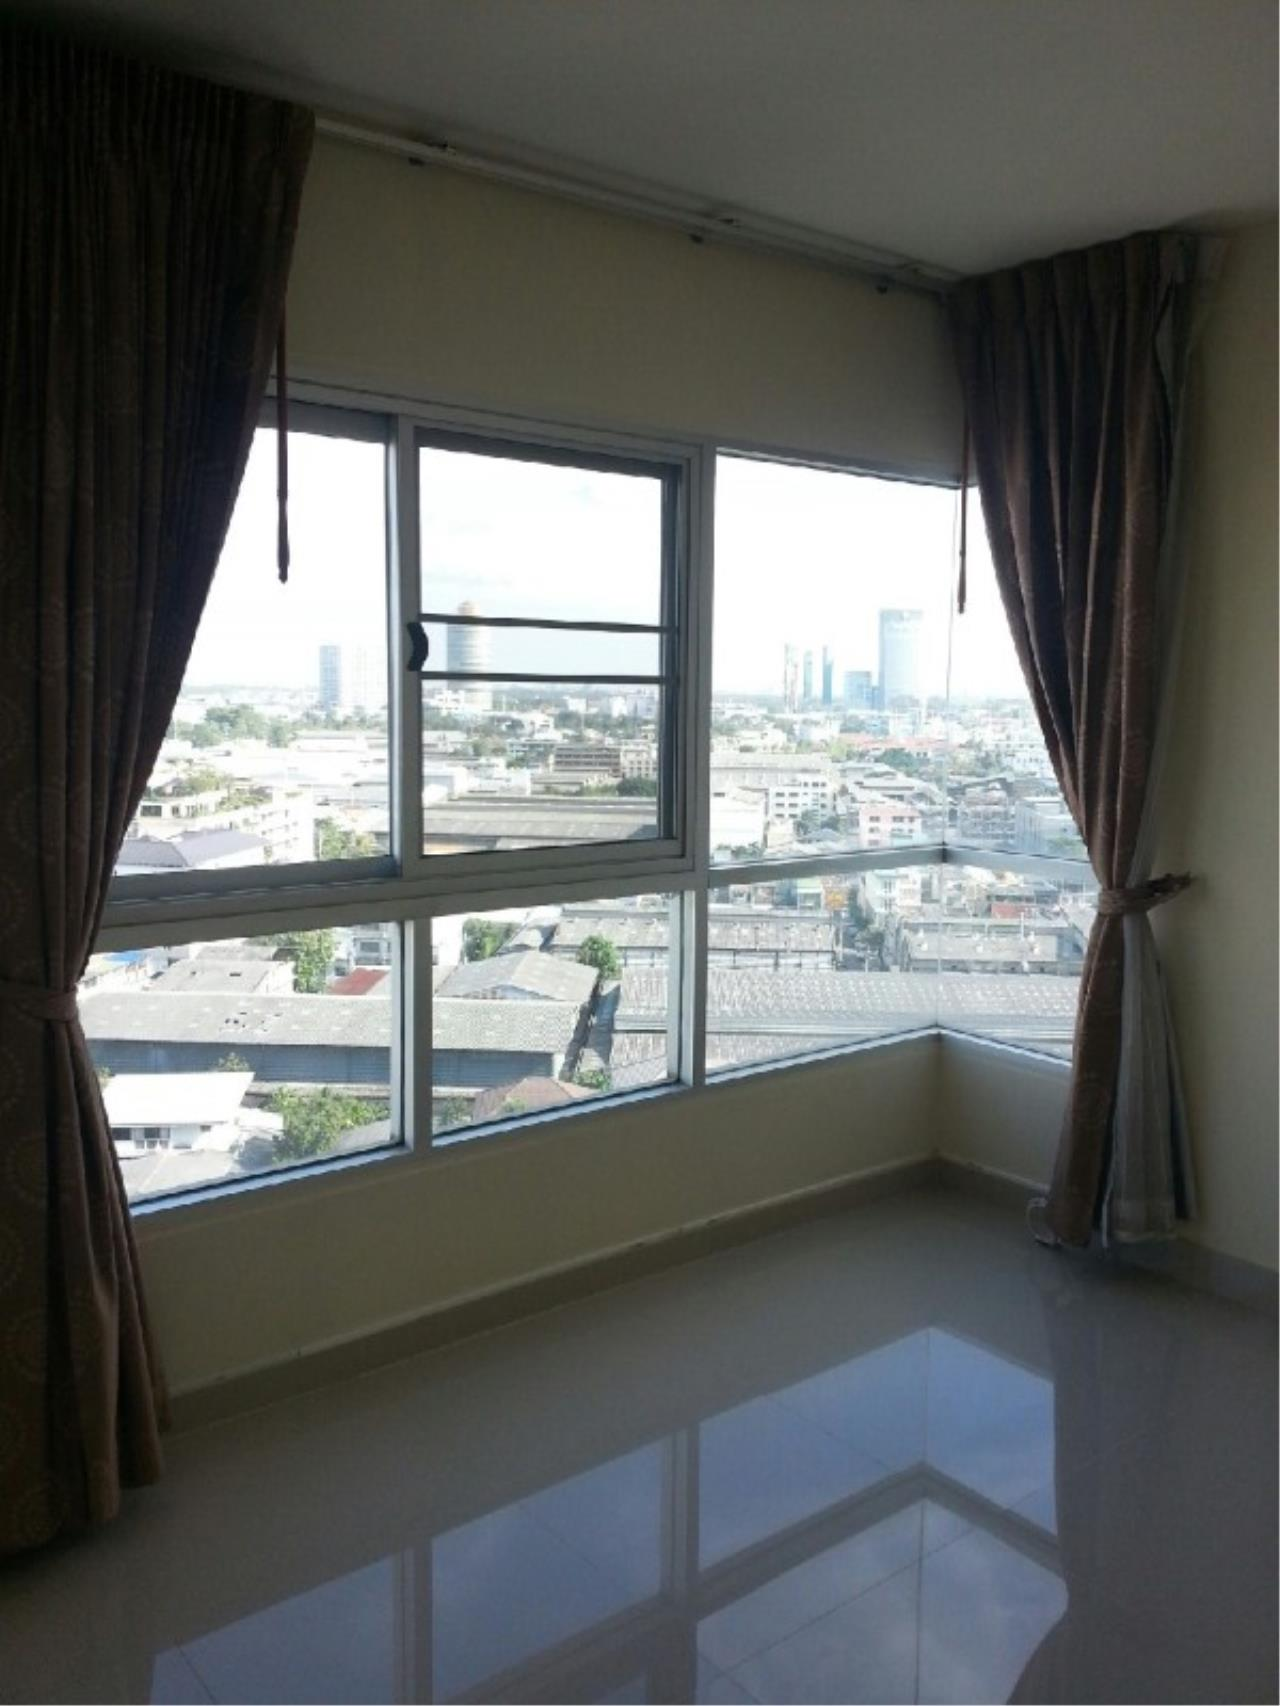 Piri Property Agency's 2 bedrooms Condominium  on 16 floor For Sale 2 36